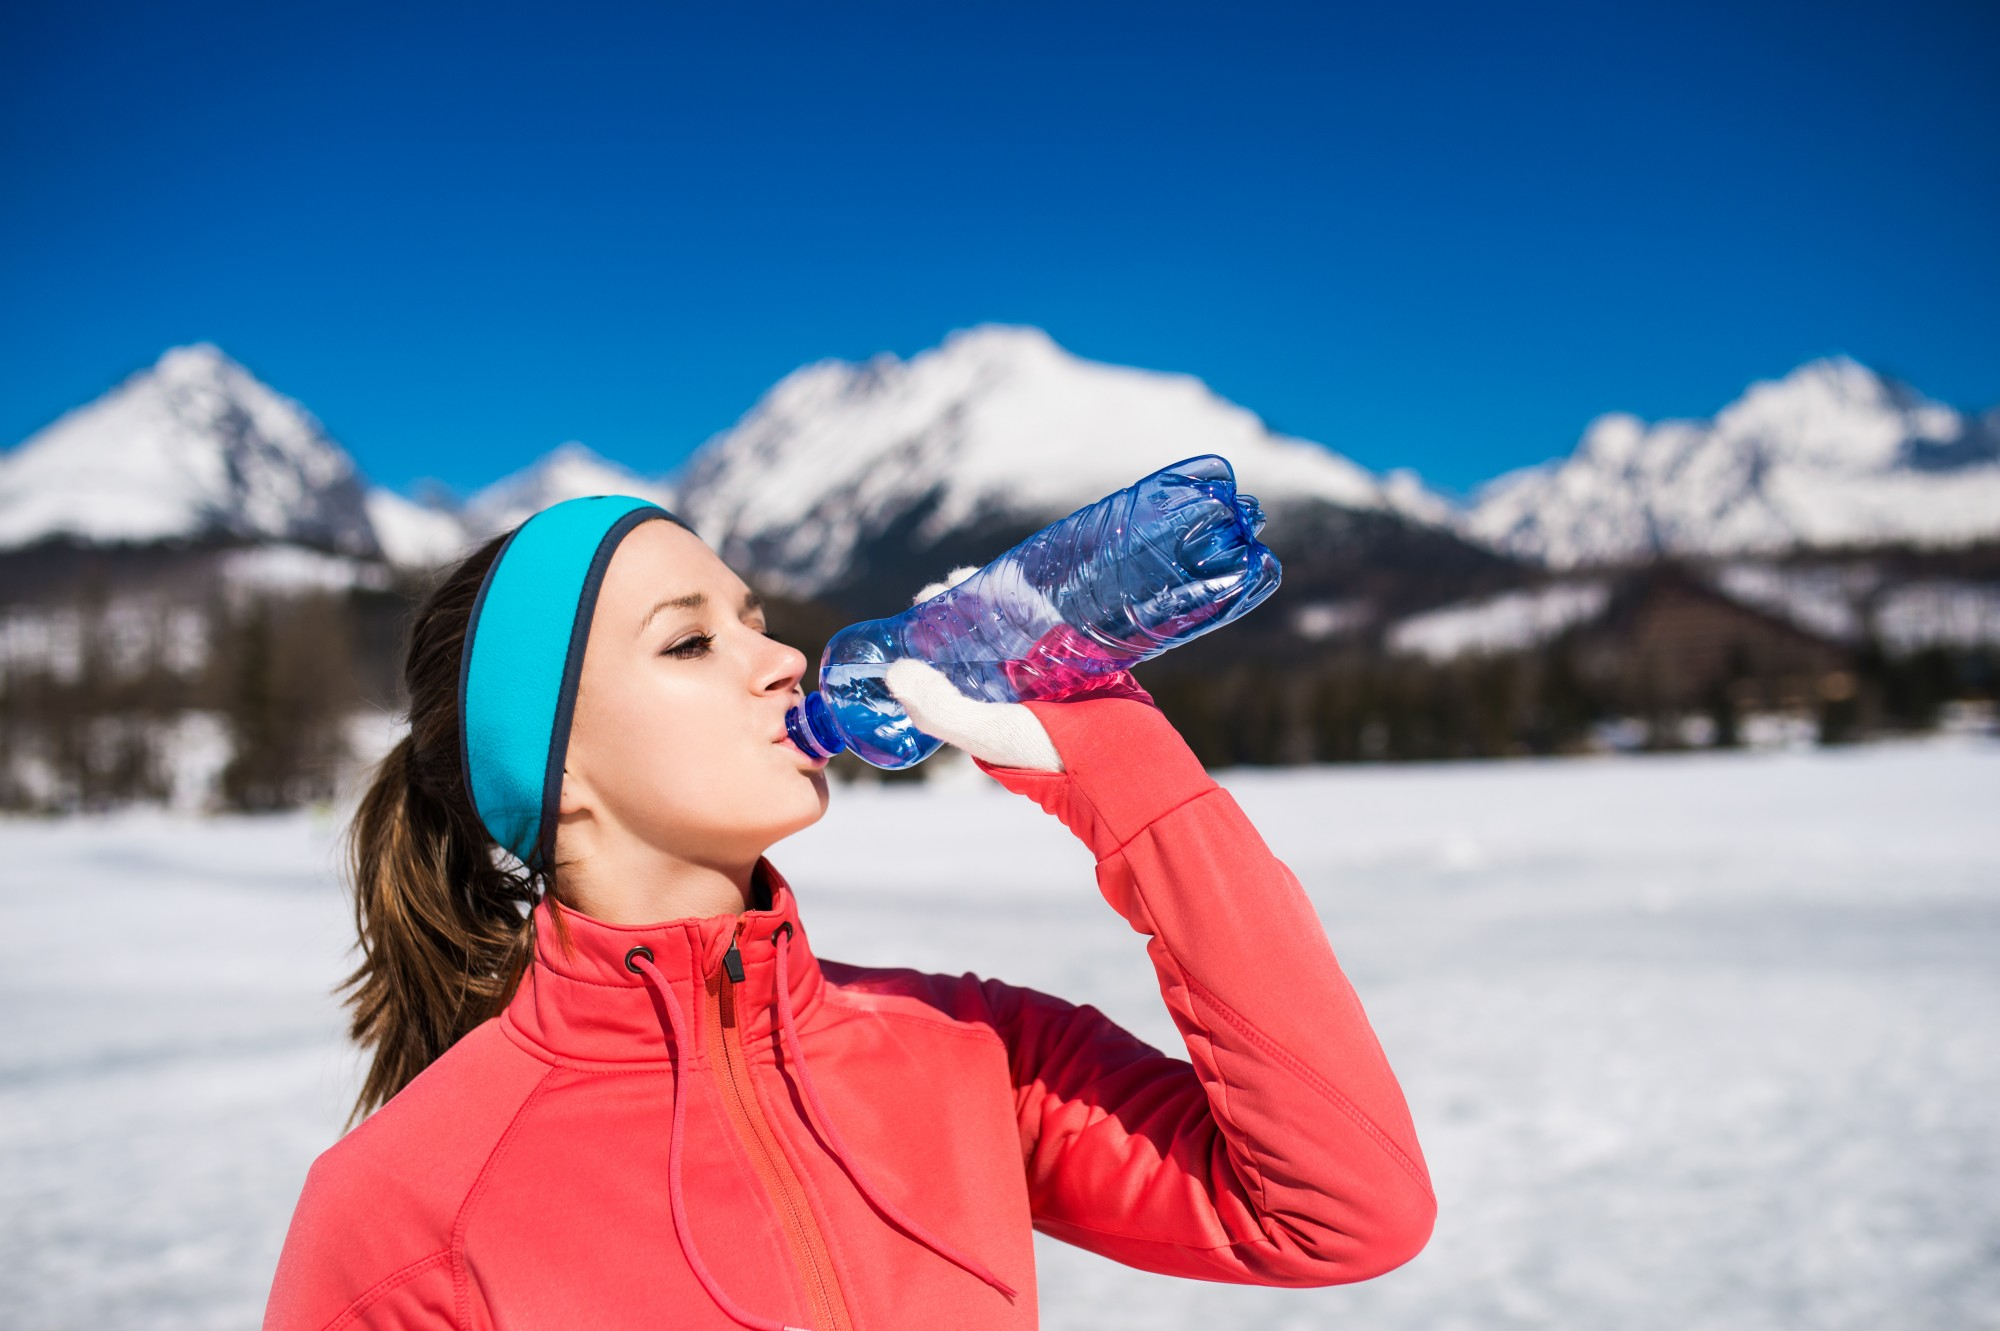 woman during winter activity with water bottle